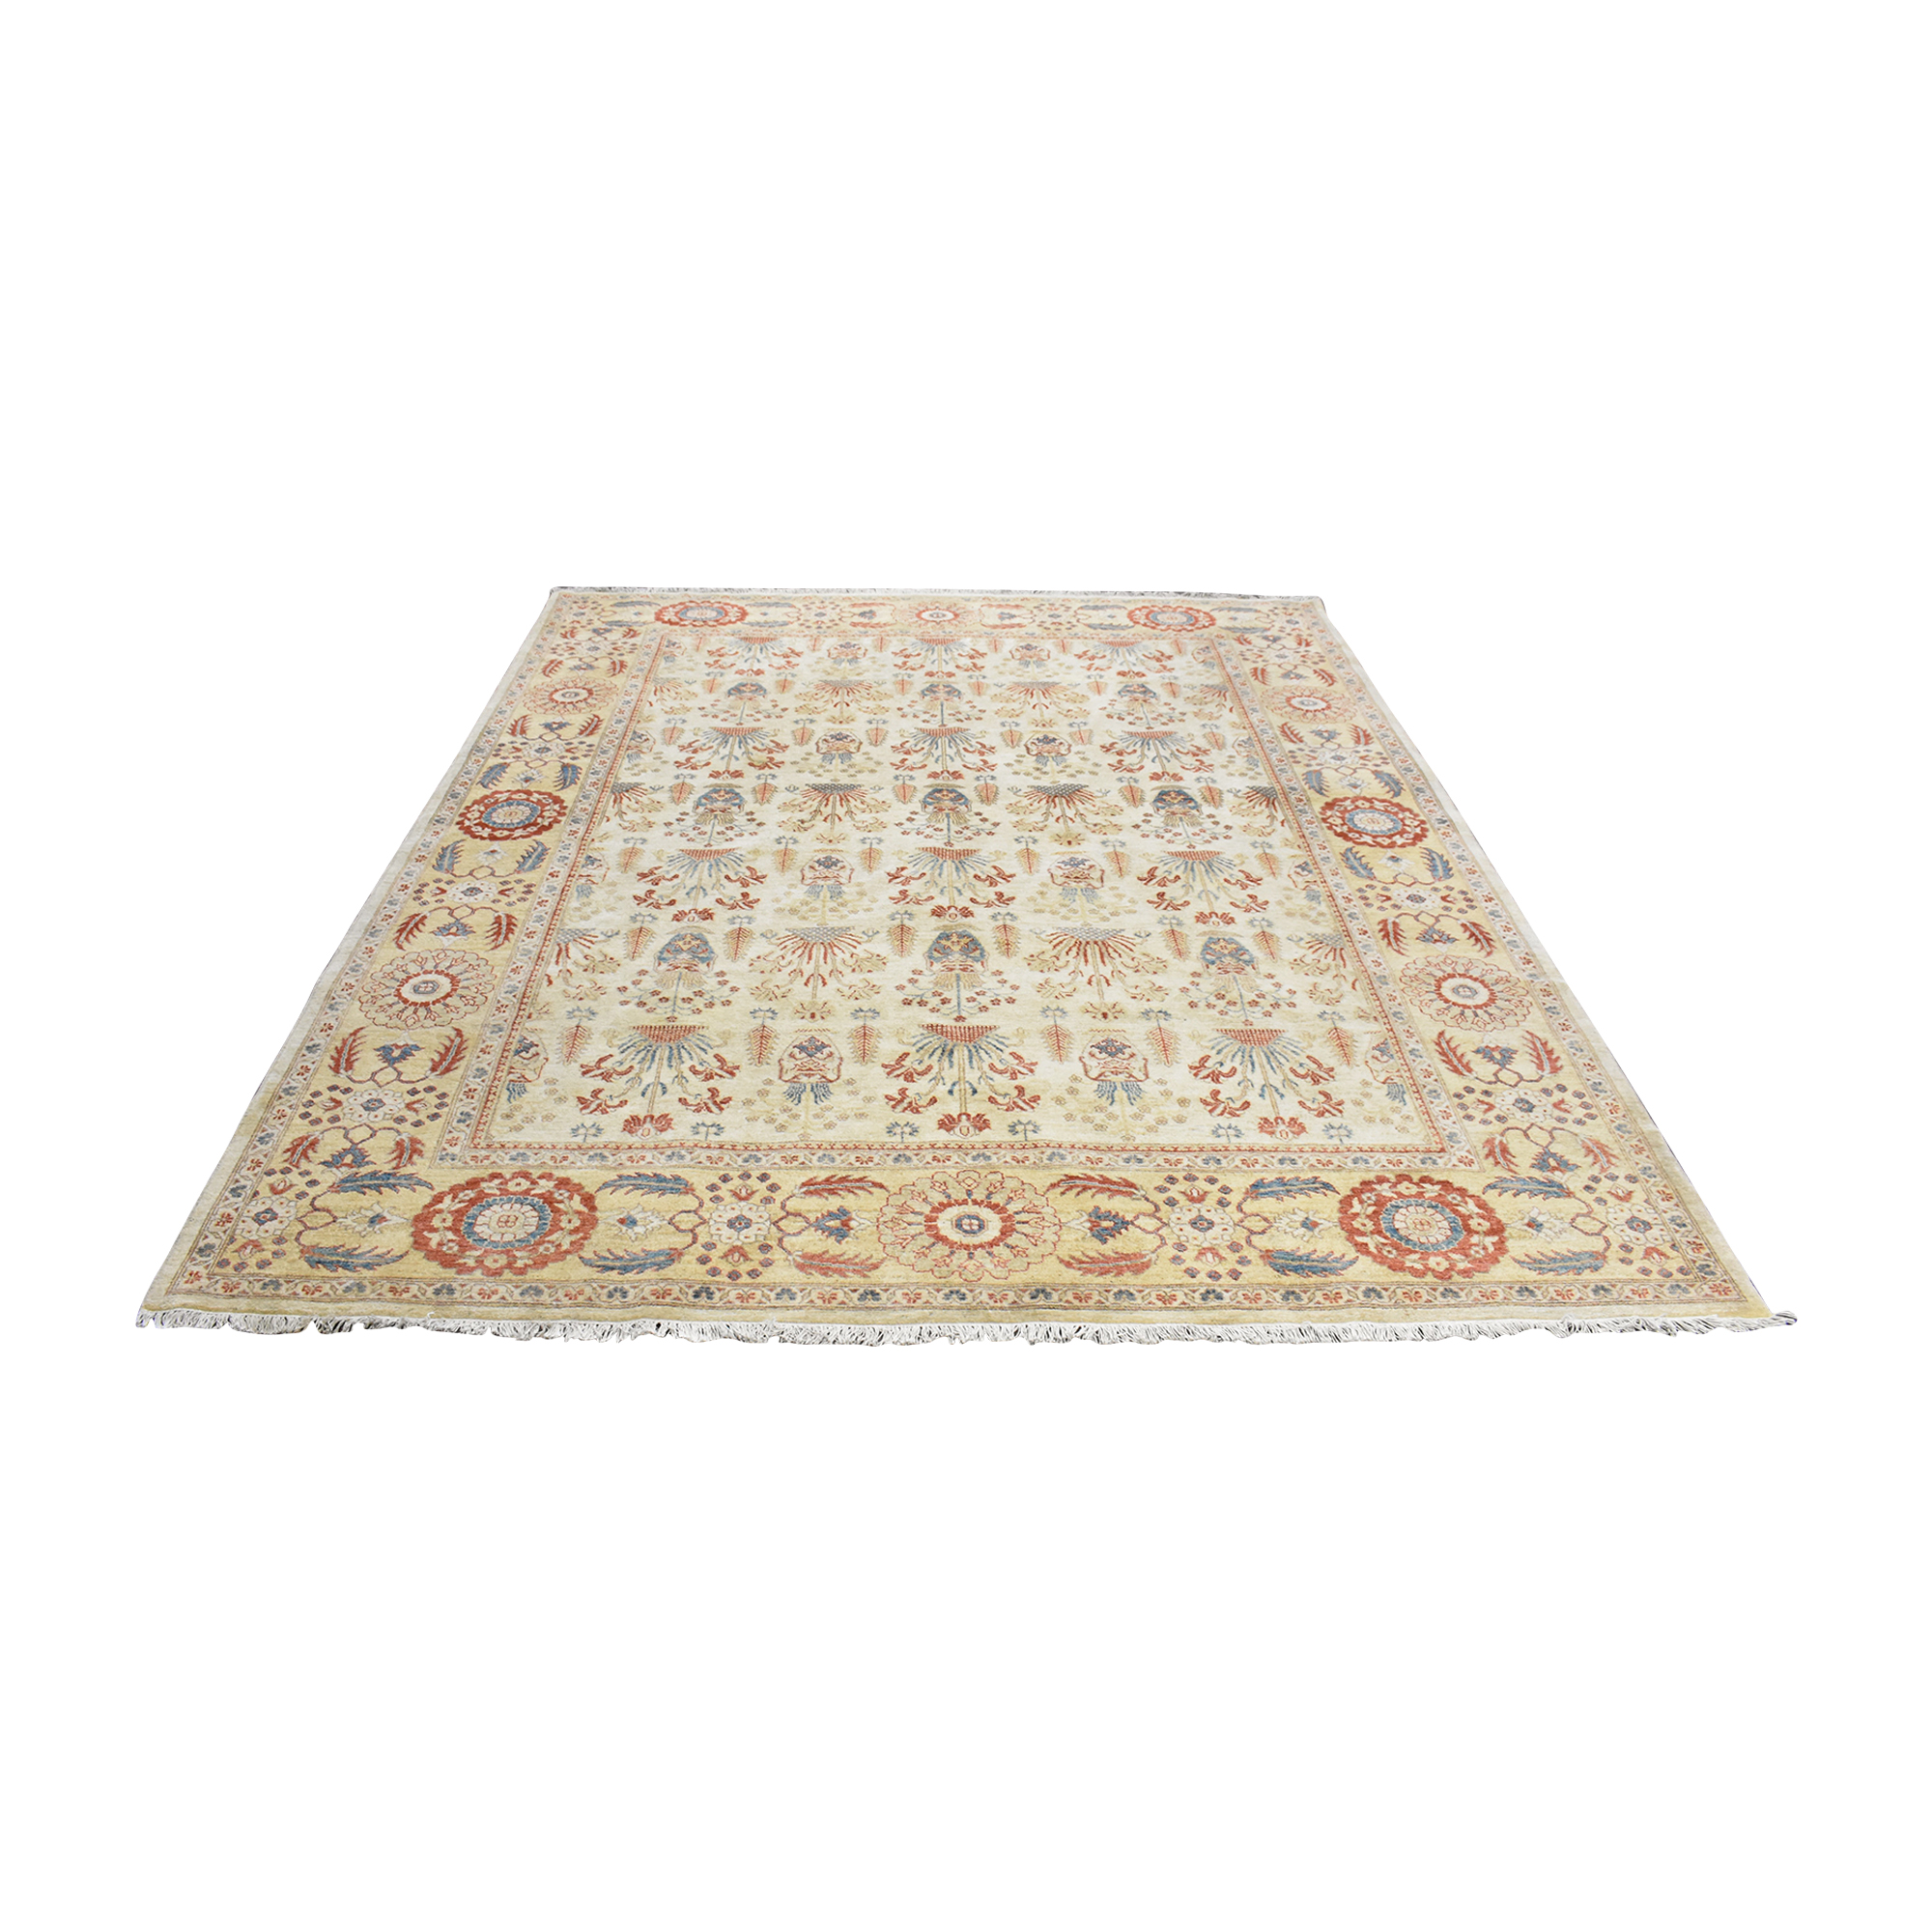 buy ABC Carpet & Home Persian-Style Area Rug ABC Carpet & Home Decor